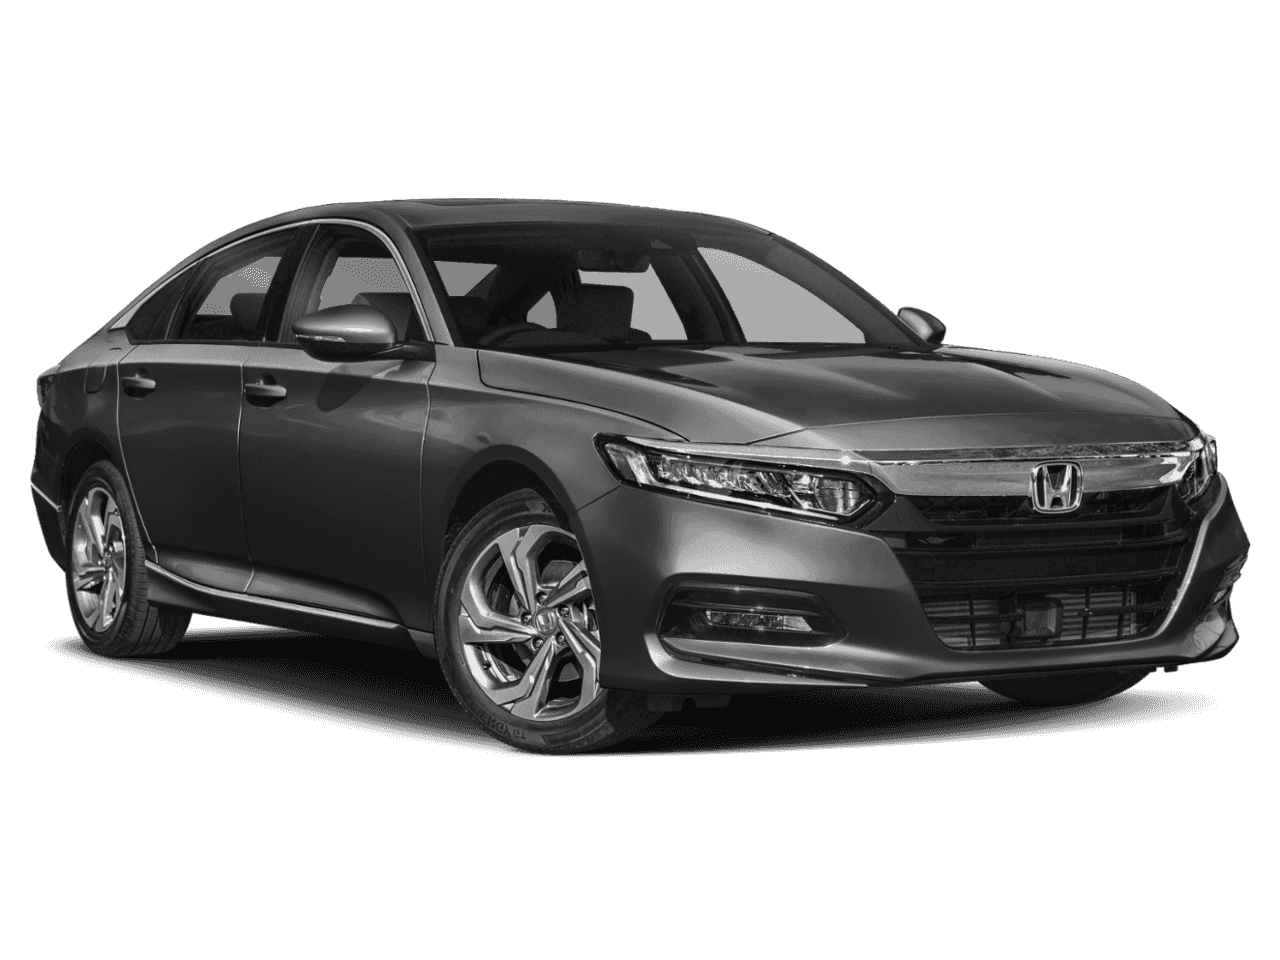 New 2019 Honda Accord EX-L 1.5T CVT